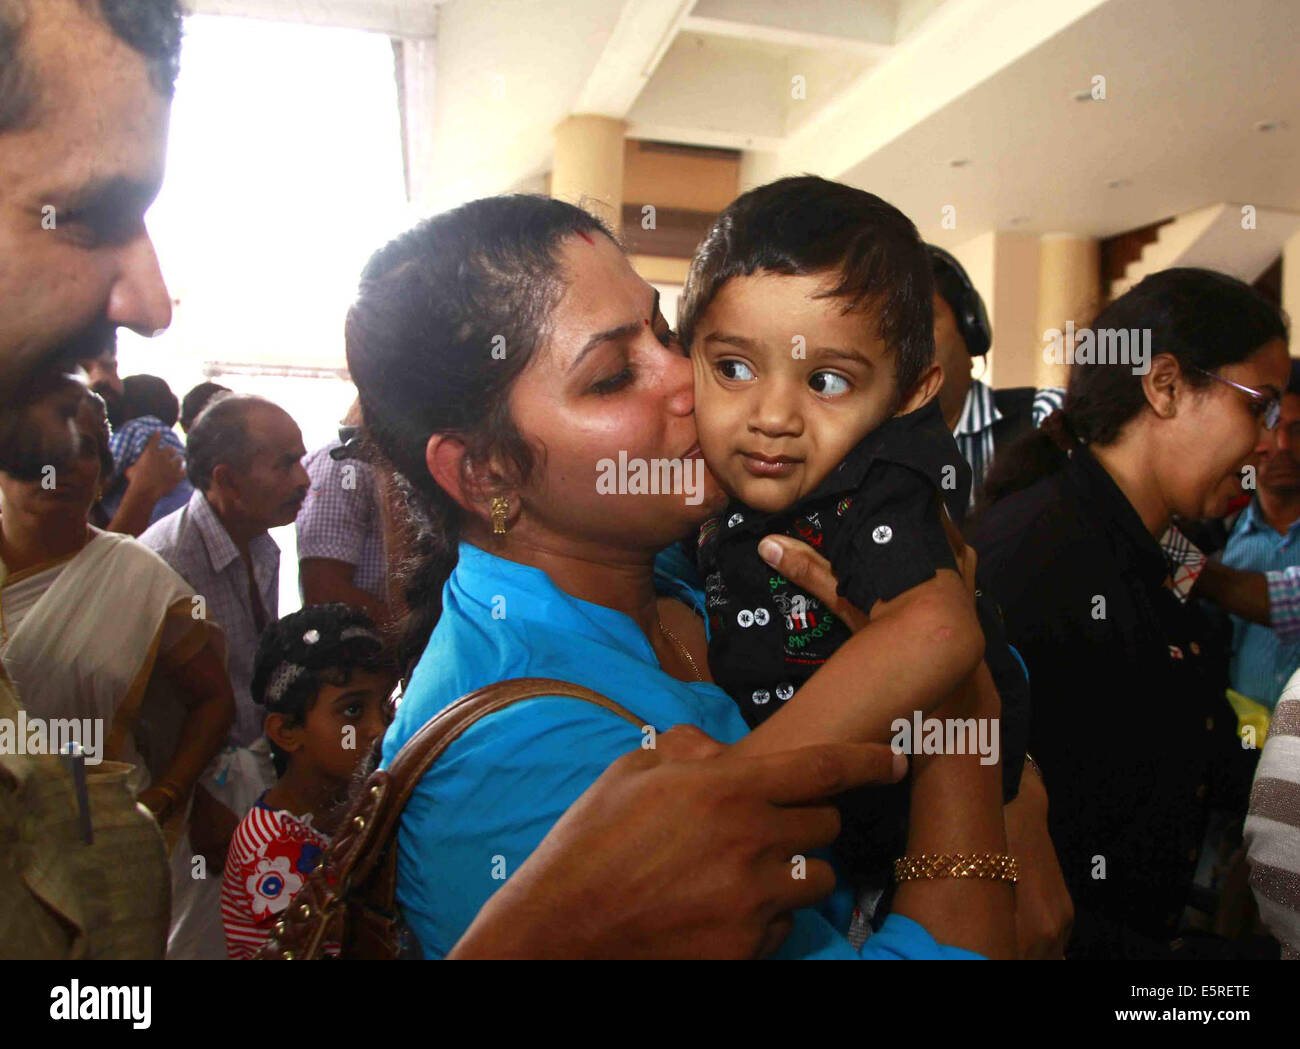 Kochi. 5th Aug, 2014. One of the 44 Indian nurses evacuated from war torn country Libya hugs her son on her arrival - Stock Image